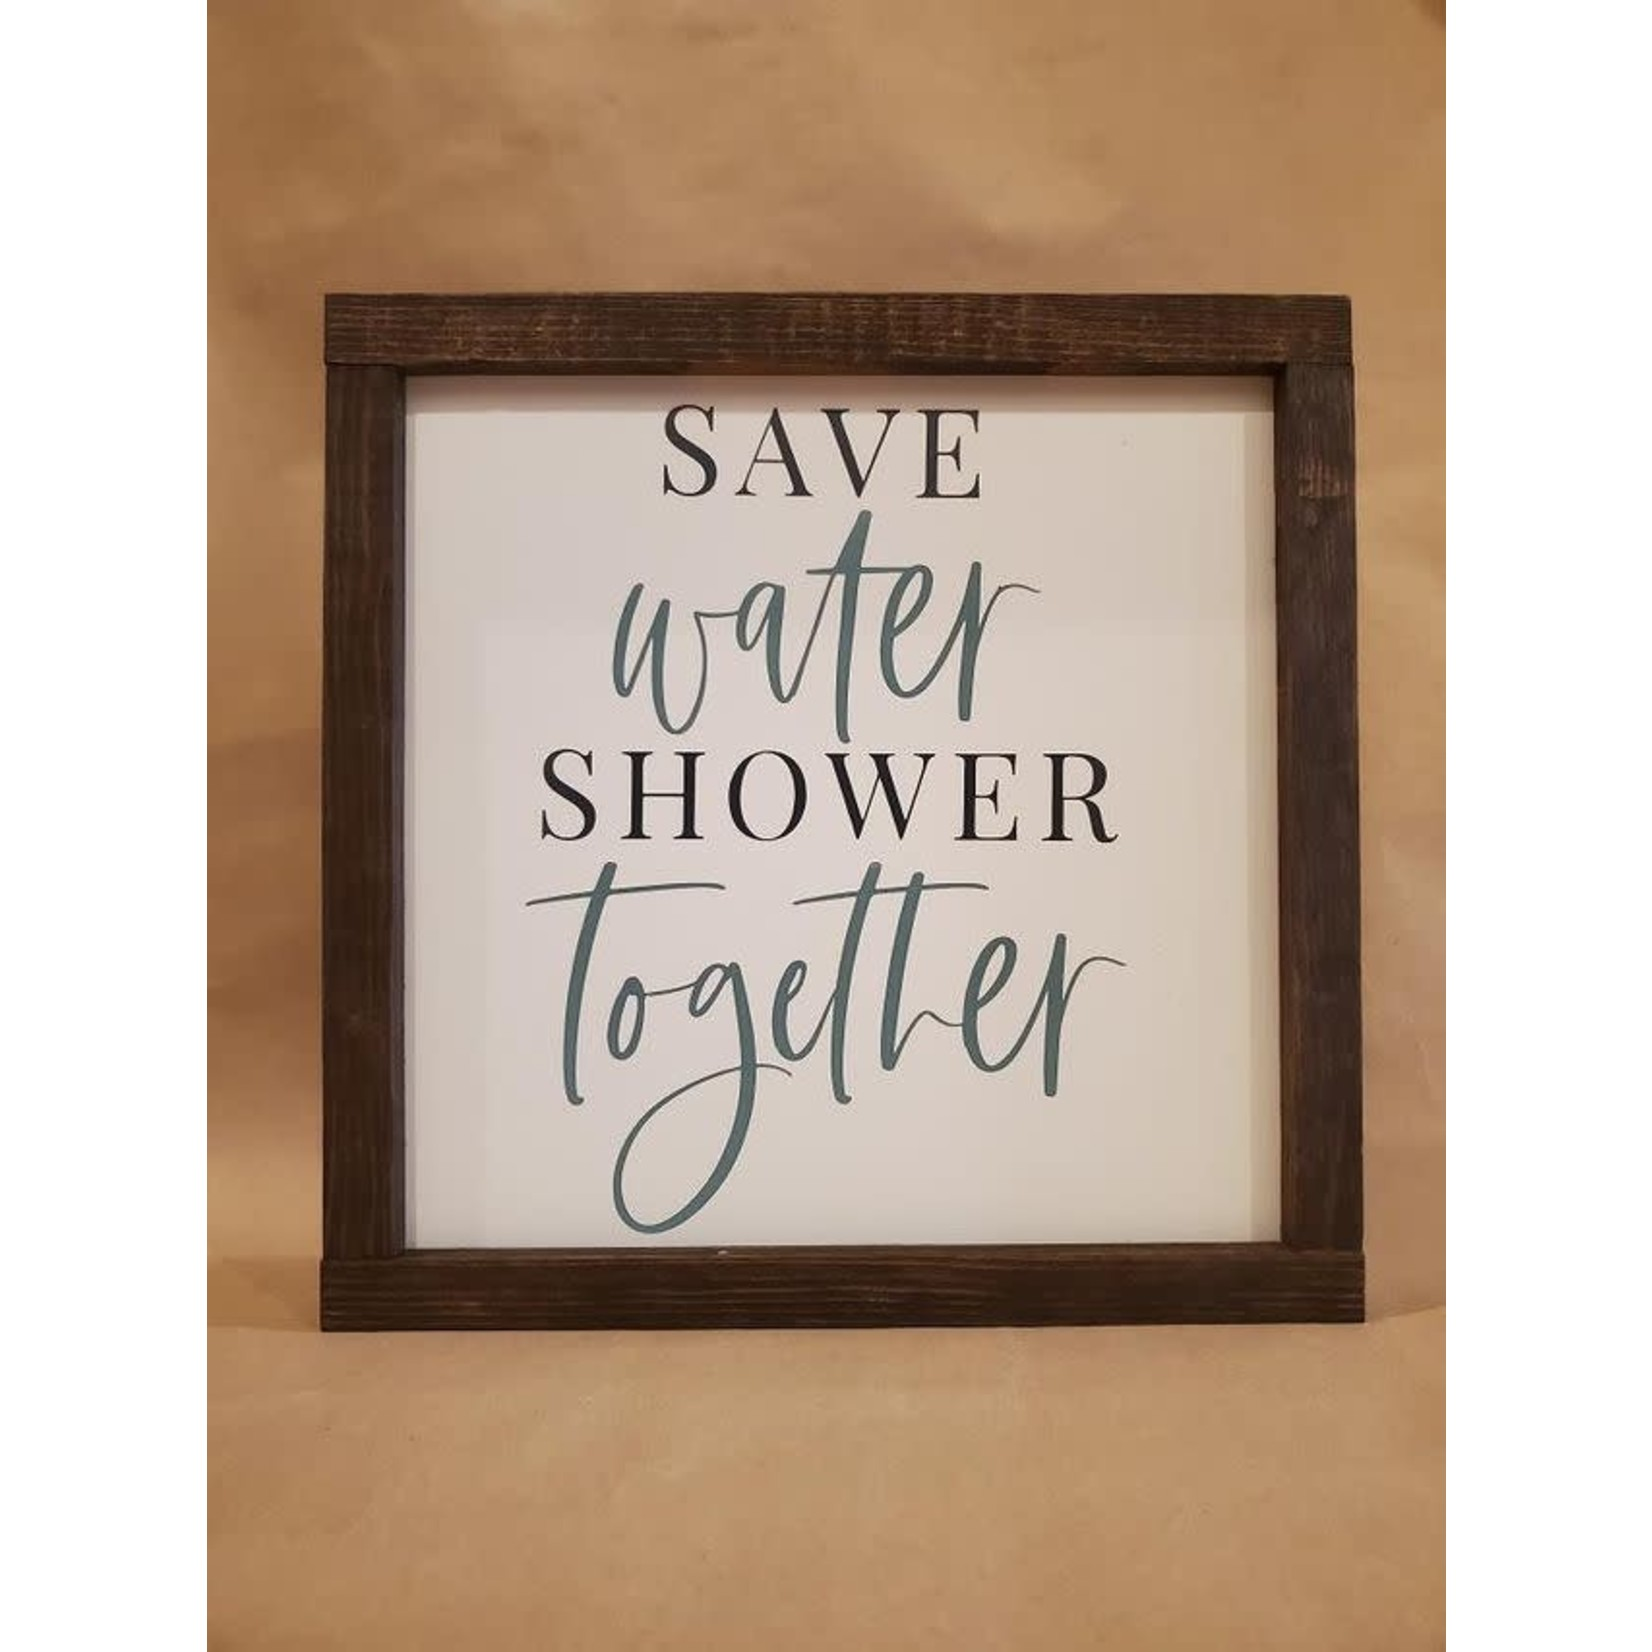 Favourite Things wood Save water shower together 10x10 framed sign